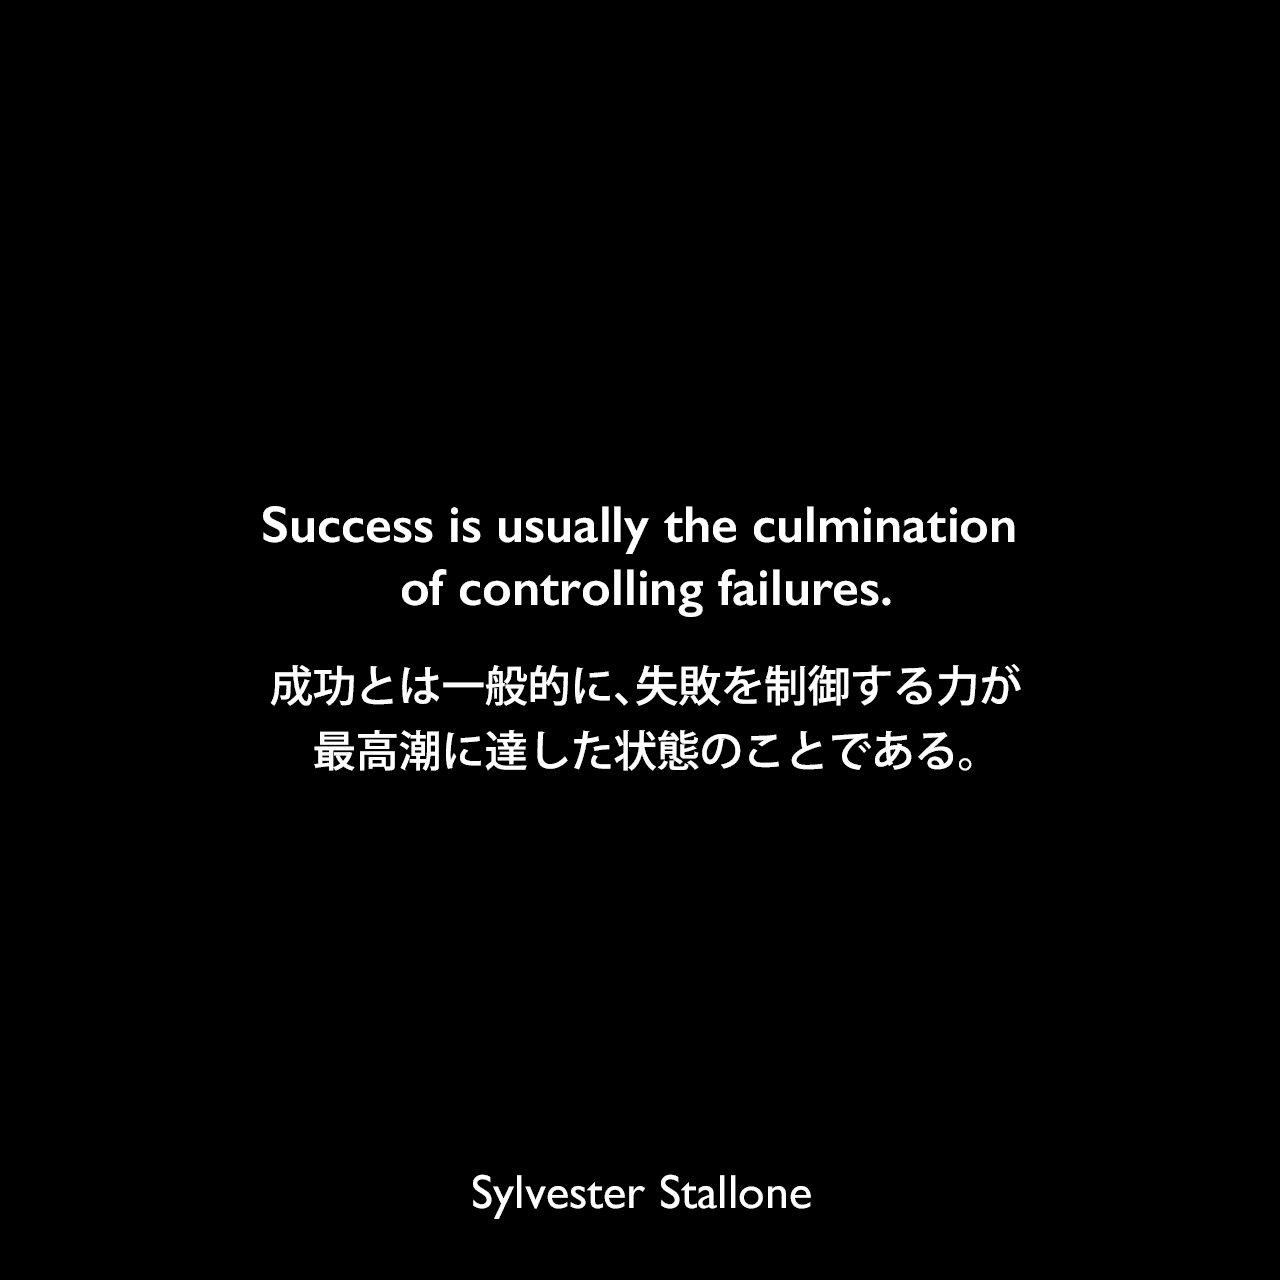 Success is usually the culmination of controlling failures.成功とは一般的に、失敗を制御する力が最高潮に達した状態のことである。Sylvester Stallone